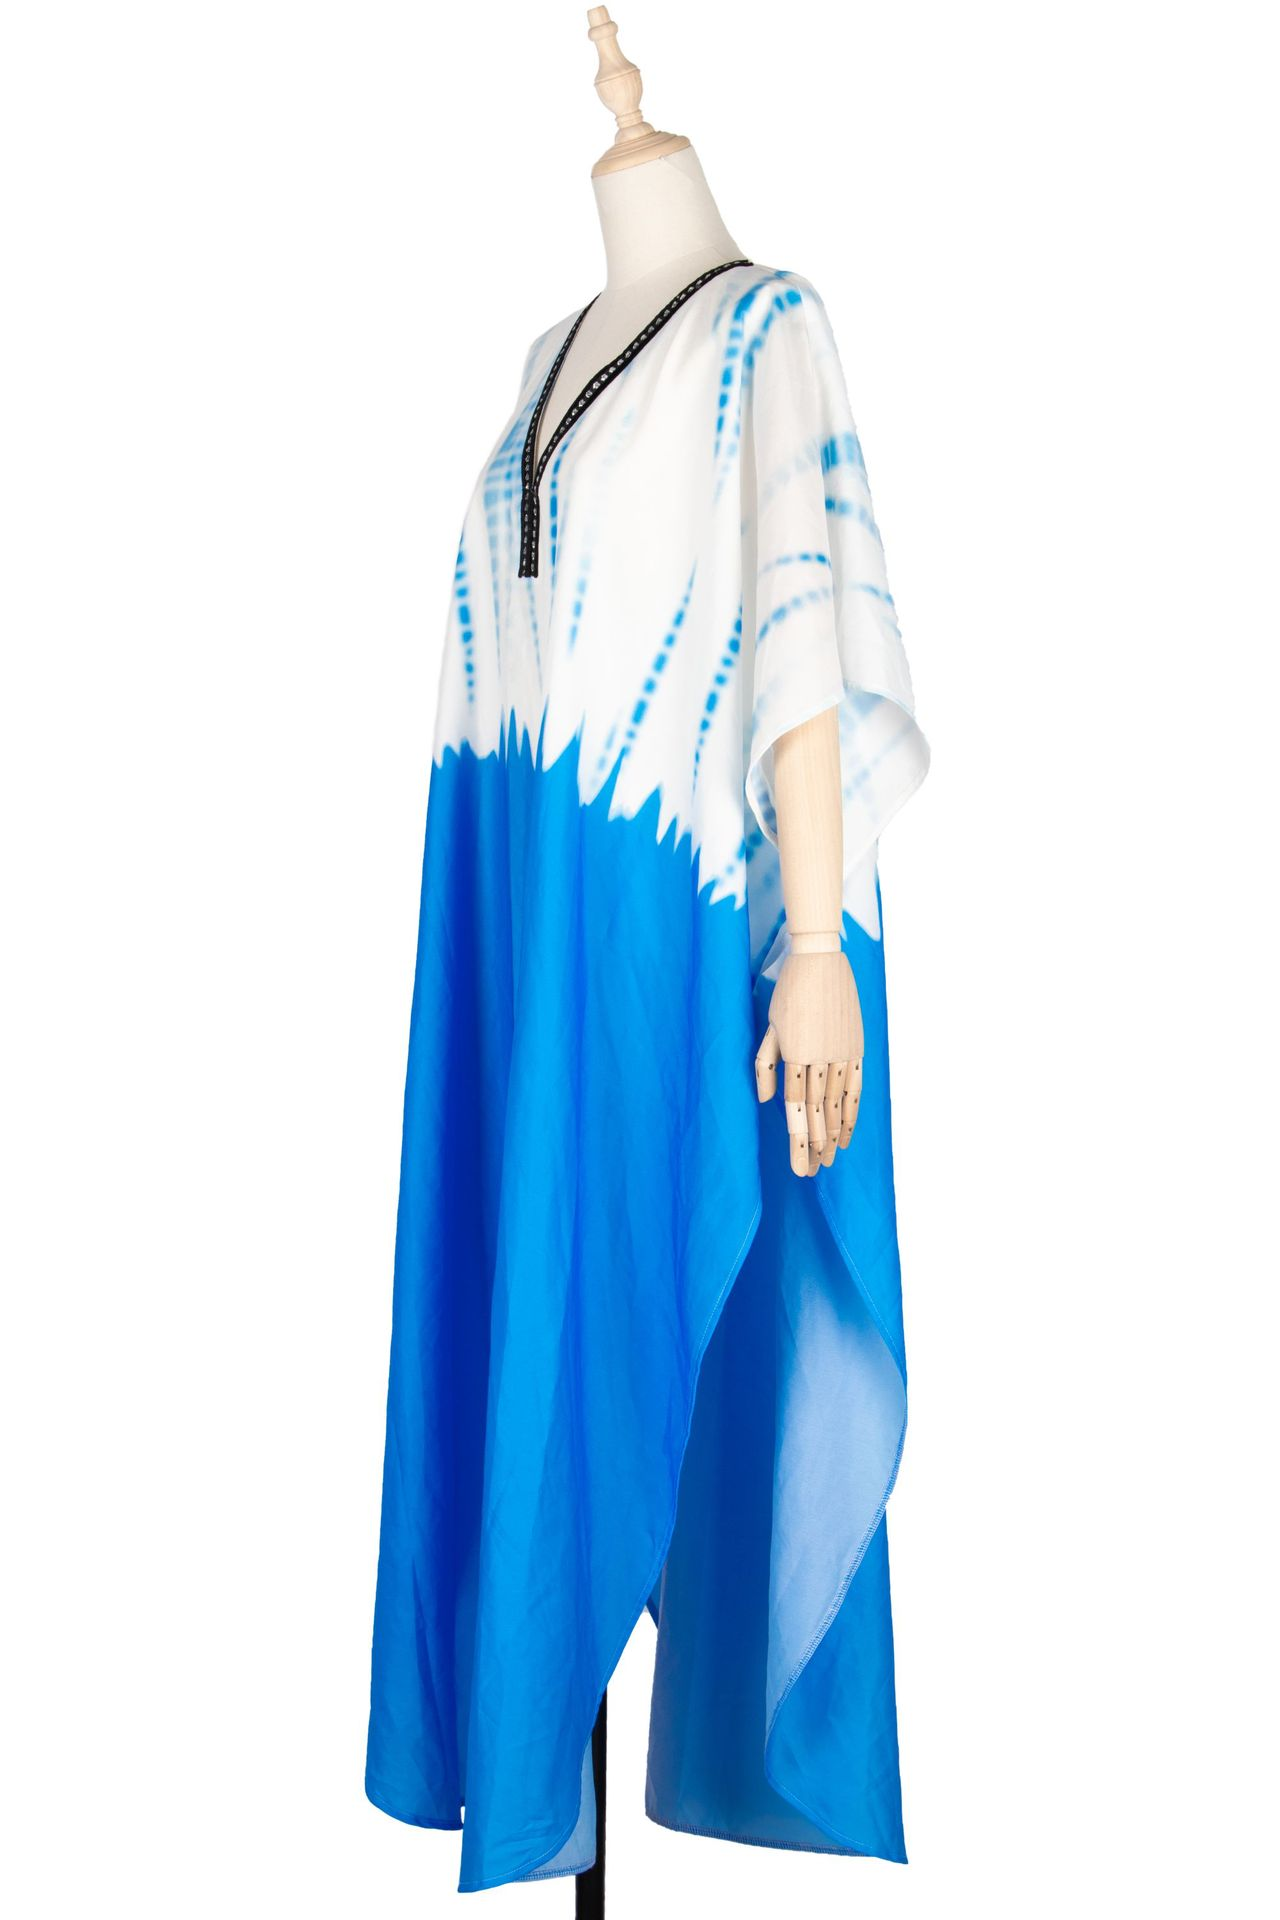 Bat sleeve new dress large size spring and summer robe blue NHDF204858